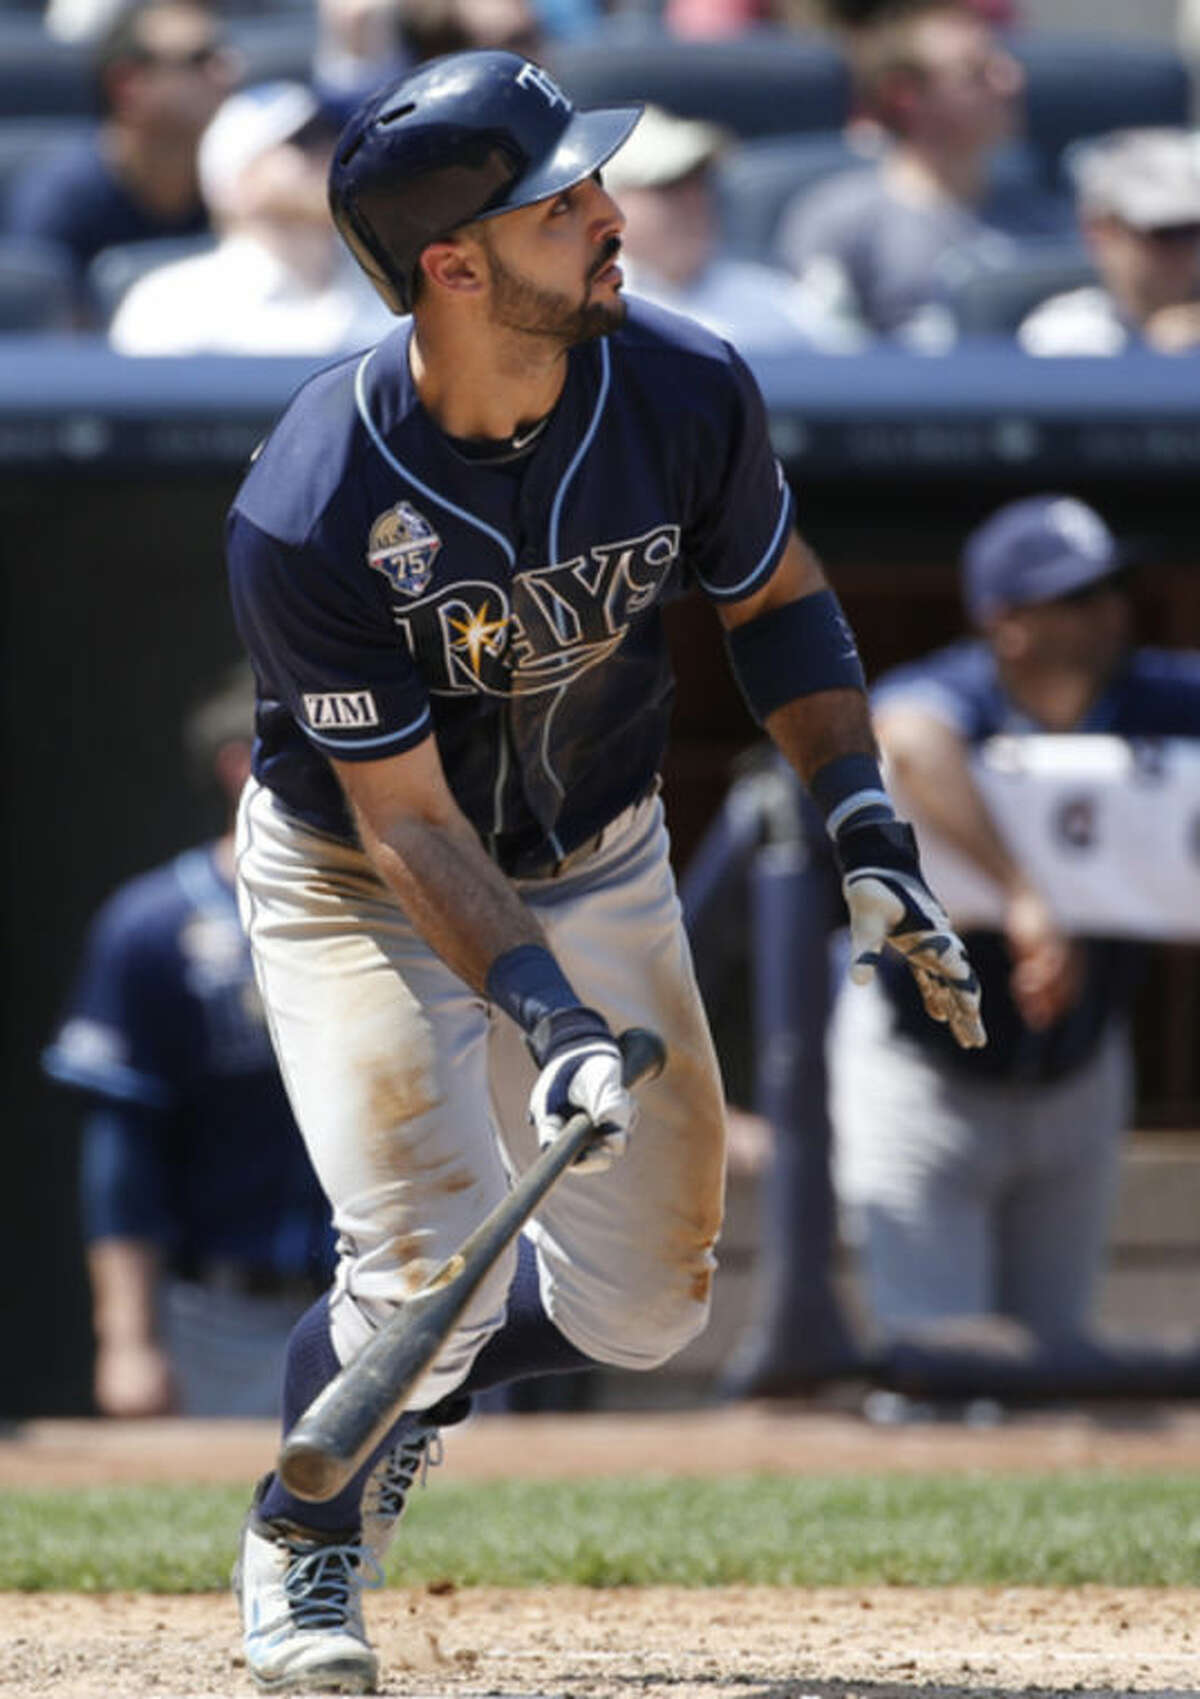 Tampa Bay Rays' Sean Rodriguez watches his sixth-inning, two-run home run off New York Yankees relief pitcher Shawn Kelley2wbb in a baseball game at Yankee Stadium in New York, Wednesday, July 2, 2014. (AP Photo/Kathy Willens)